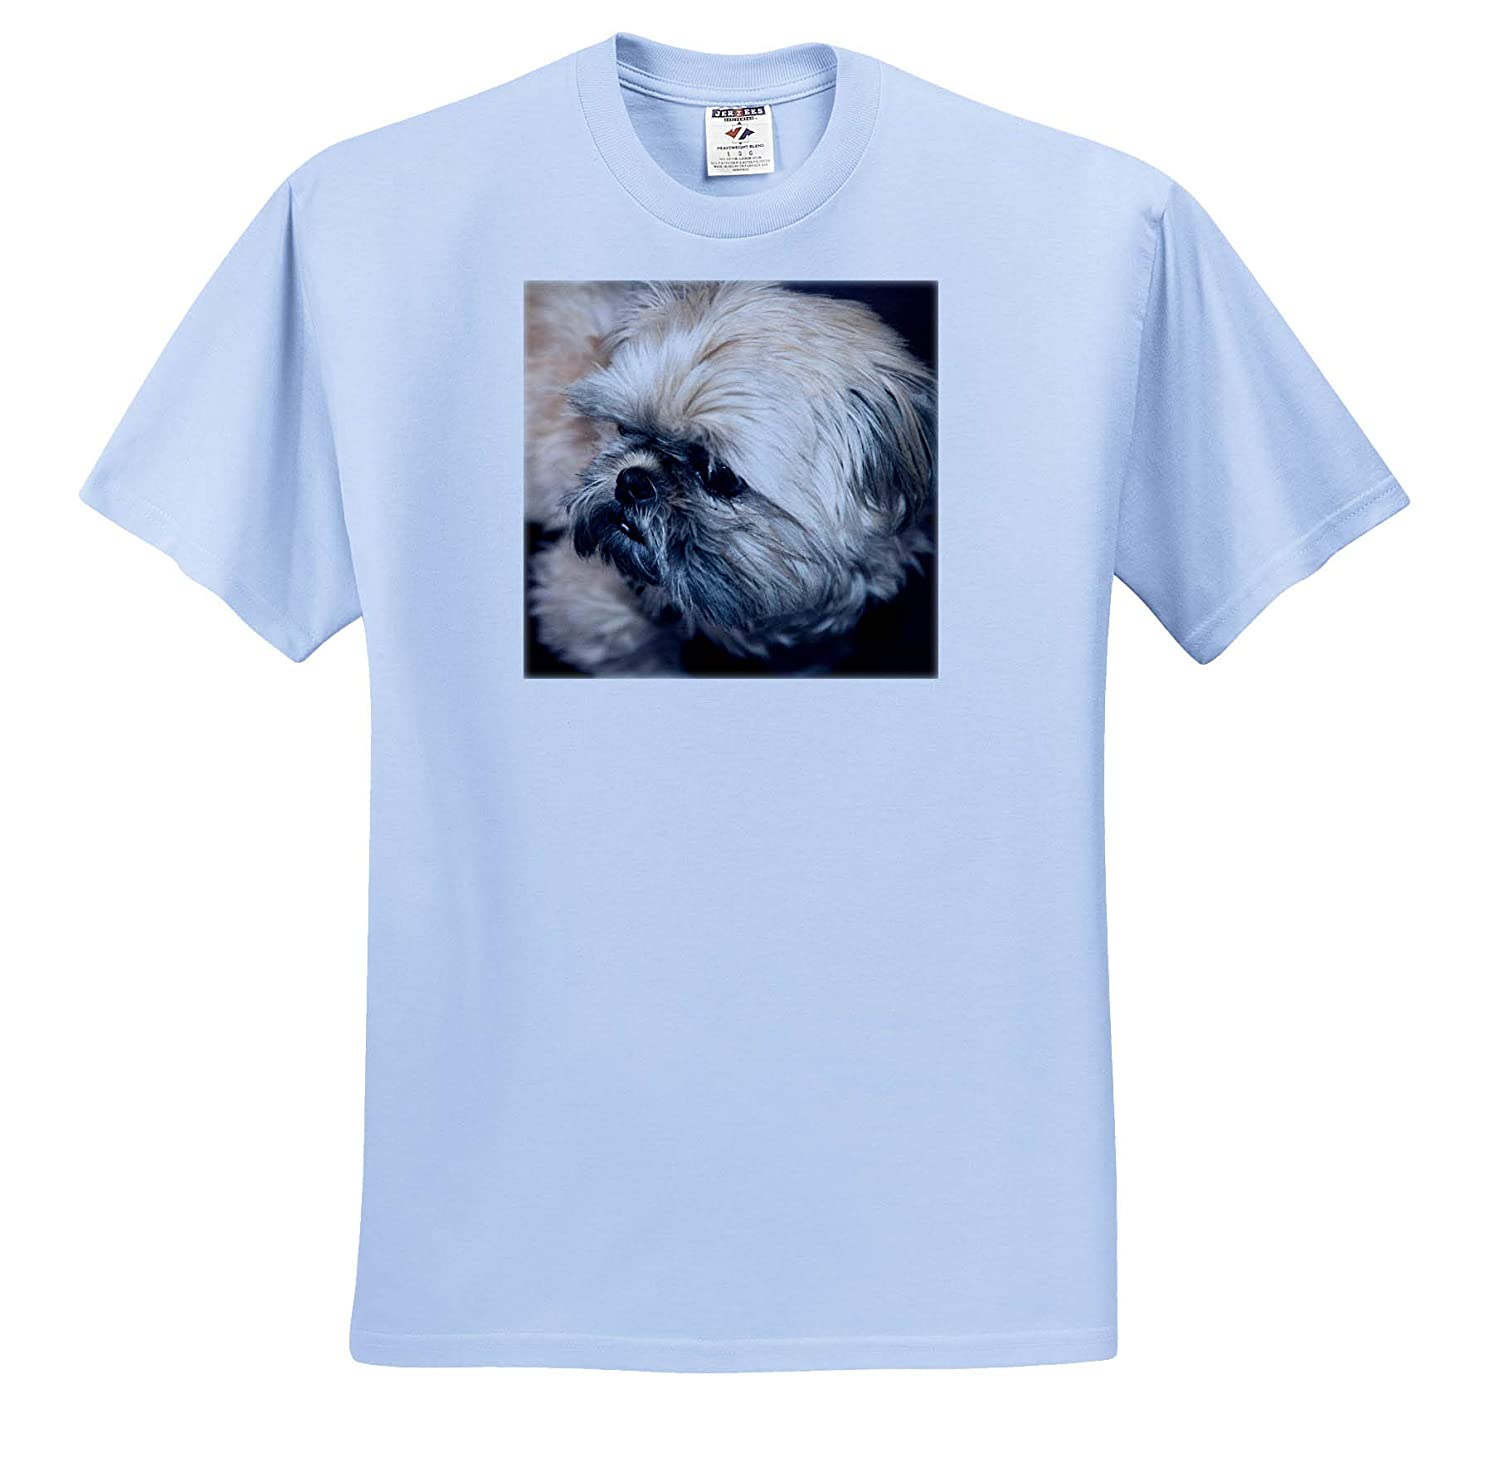 T-Shirts A Sweet Baby Shih Tzu face Shot up Close with Brindle Hair 3dRose Jos Fauxtographee Shih Tzu Baby Face